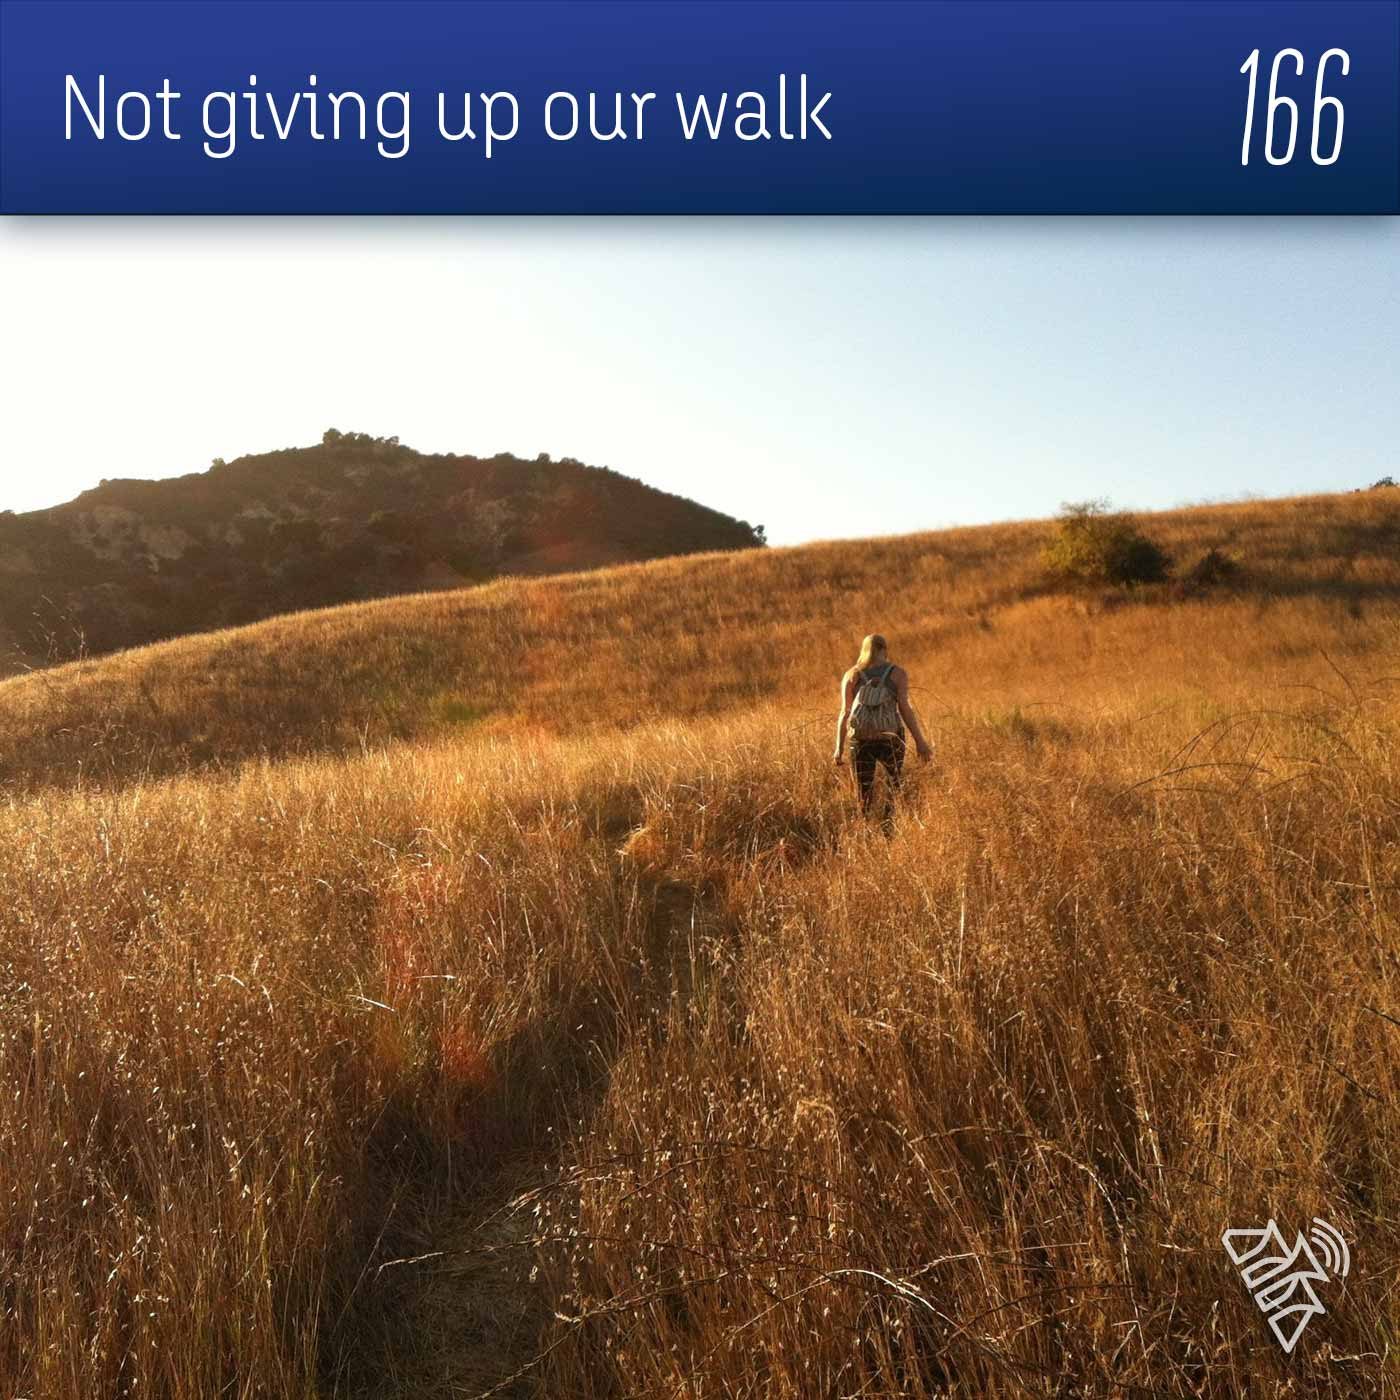 Don't give up our walk in the Lord